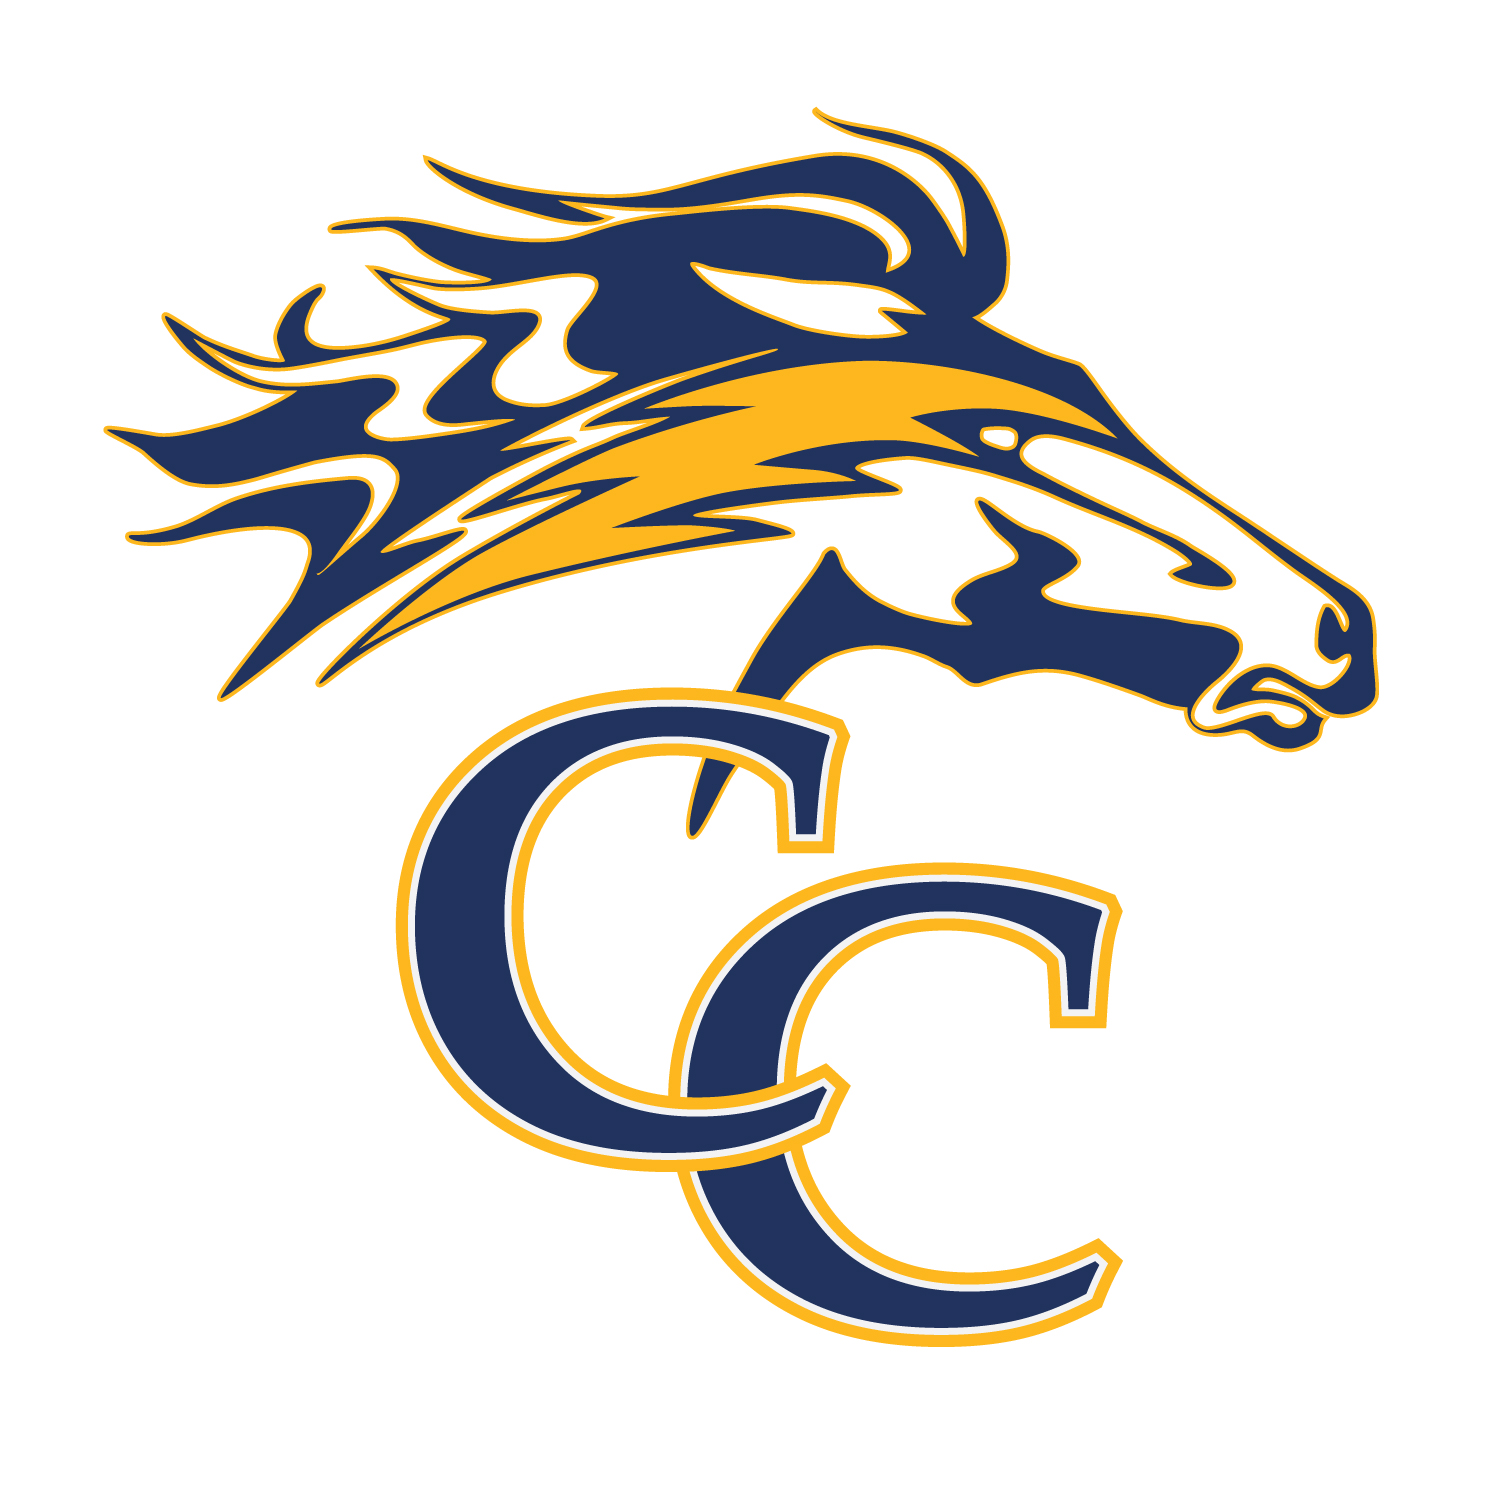 Team logo (draft) for the Churchville Chargers